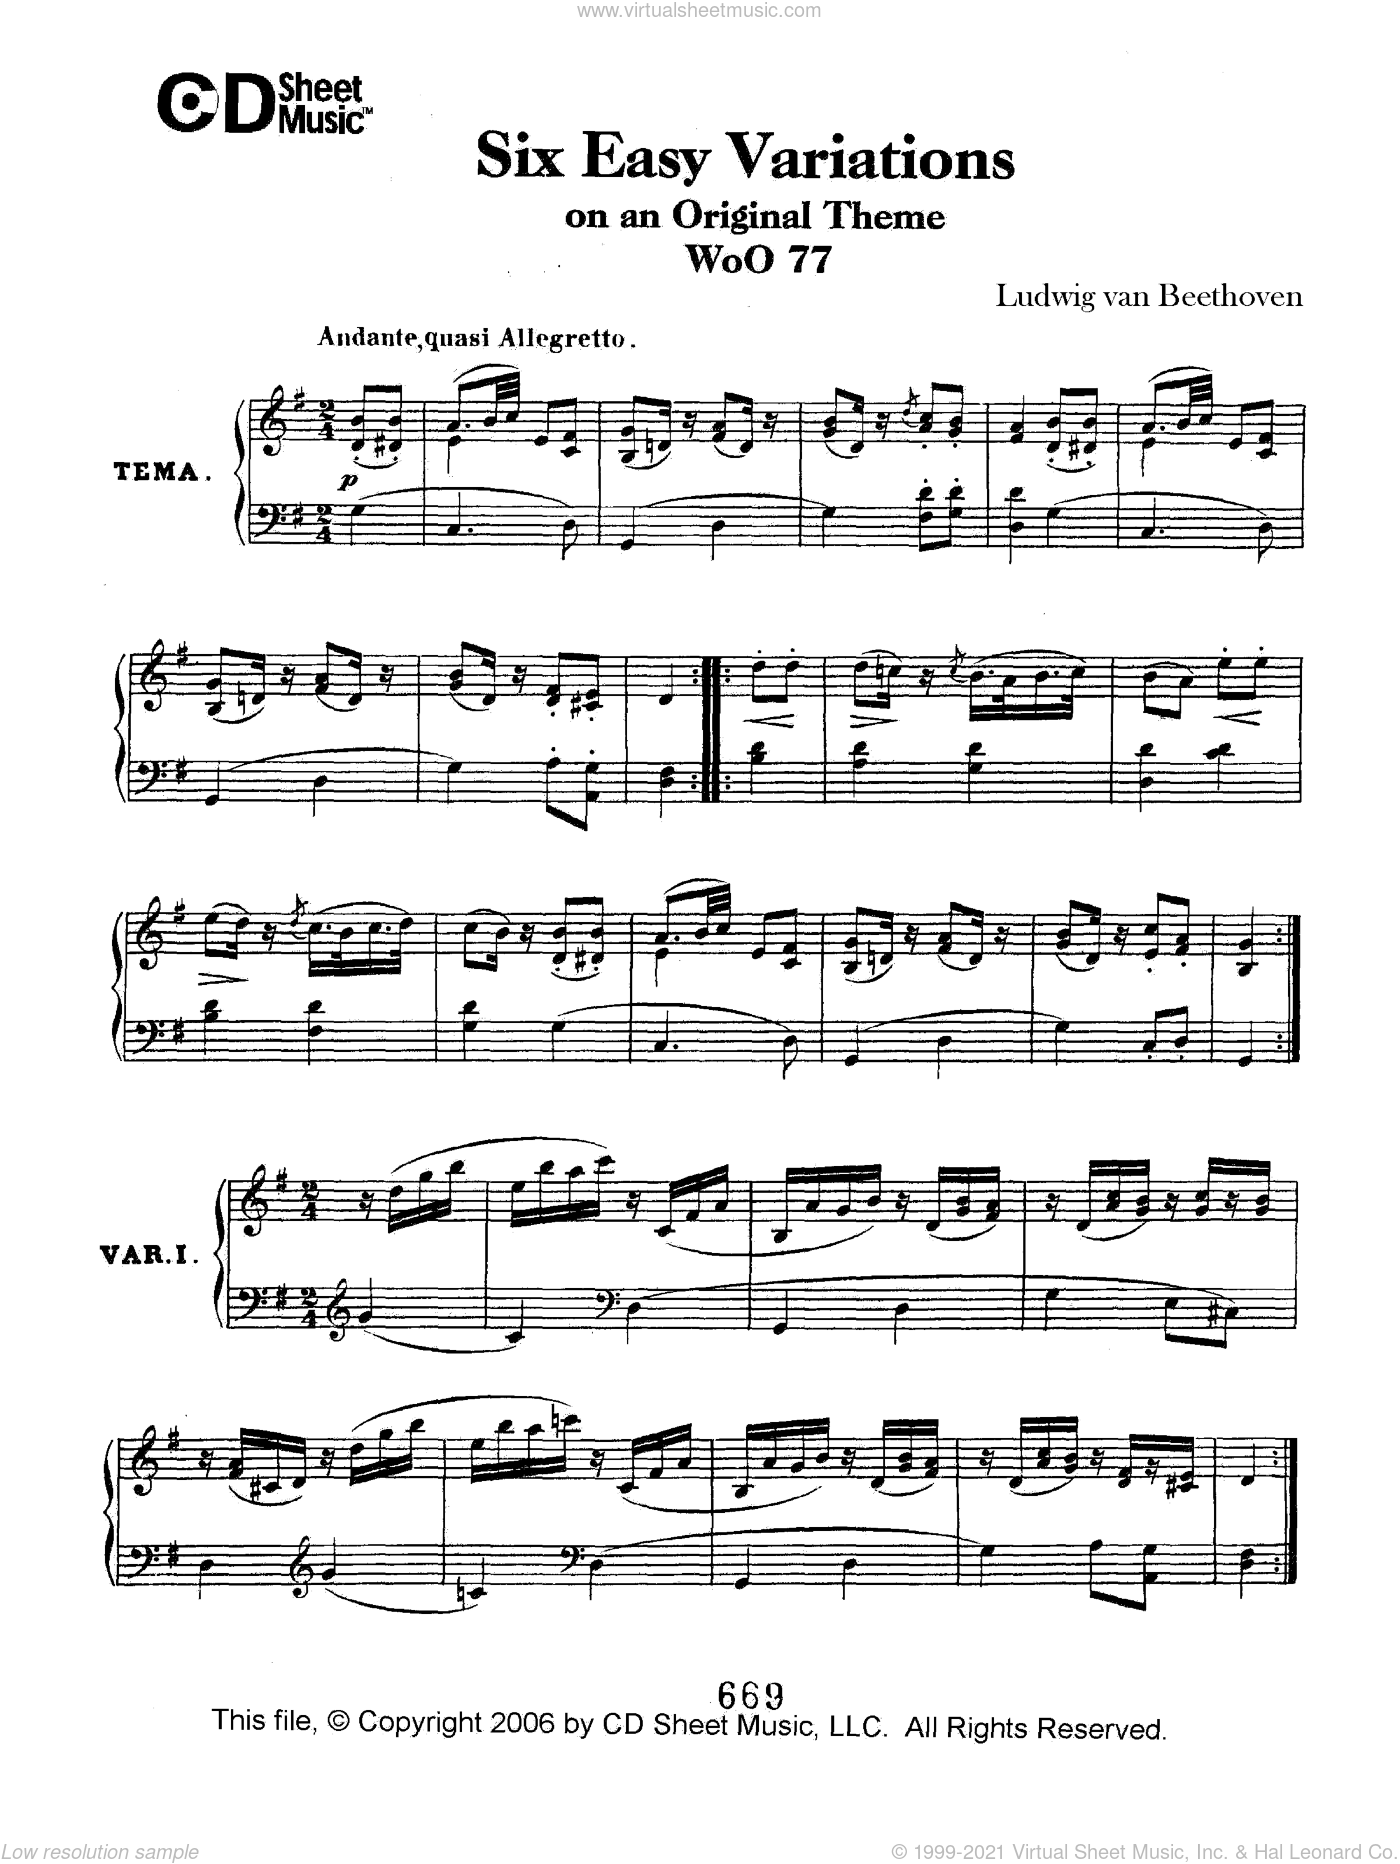 Easy (6) Variations On An Original Theme, Woo 77 sheet music for piano solo by Ludwig van Beethoven. Score Image Preview.